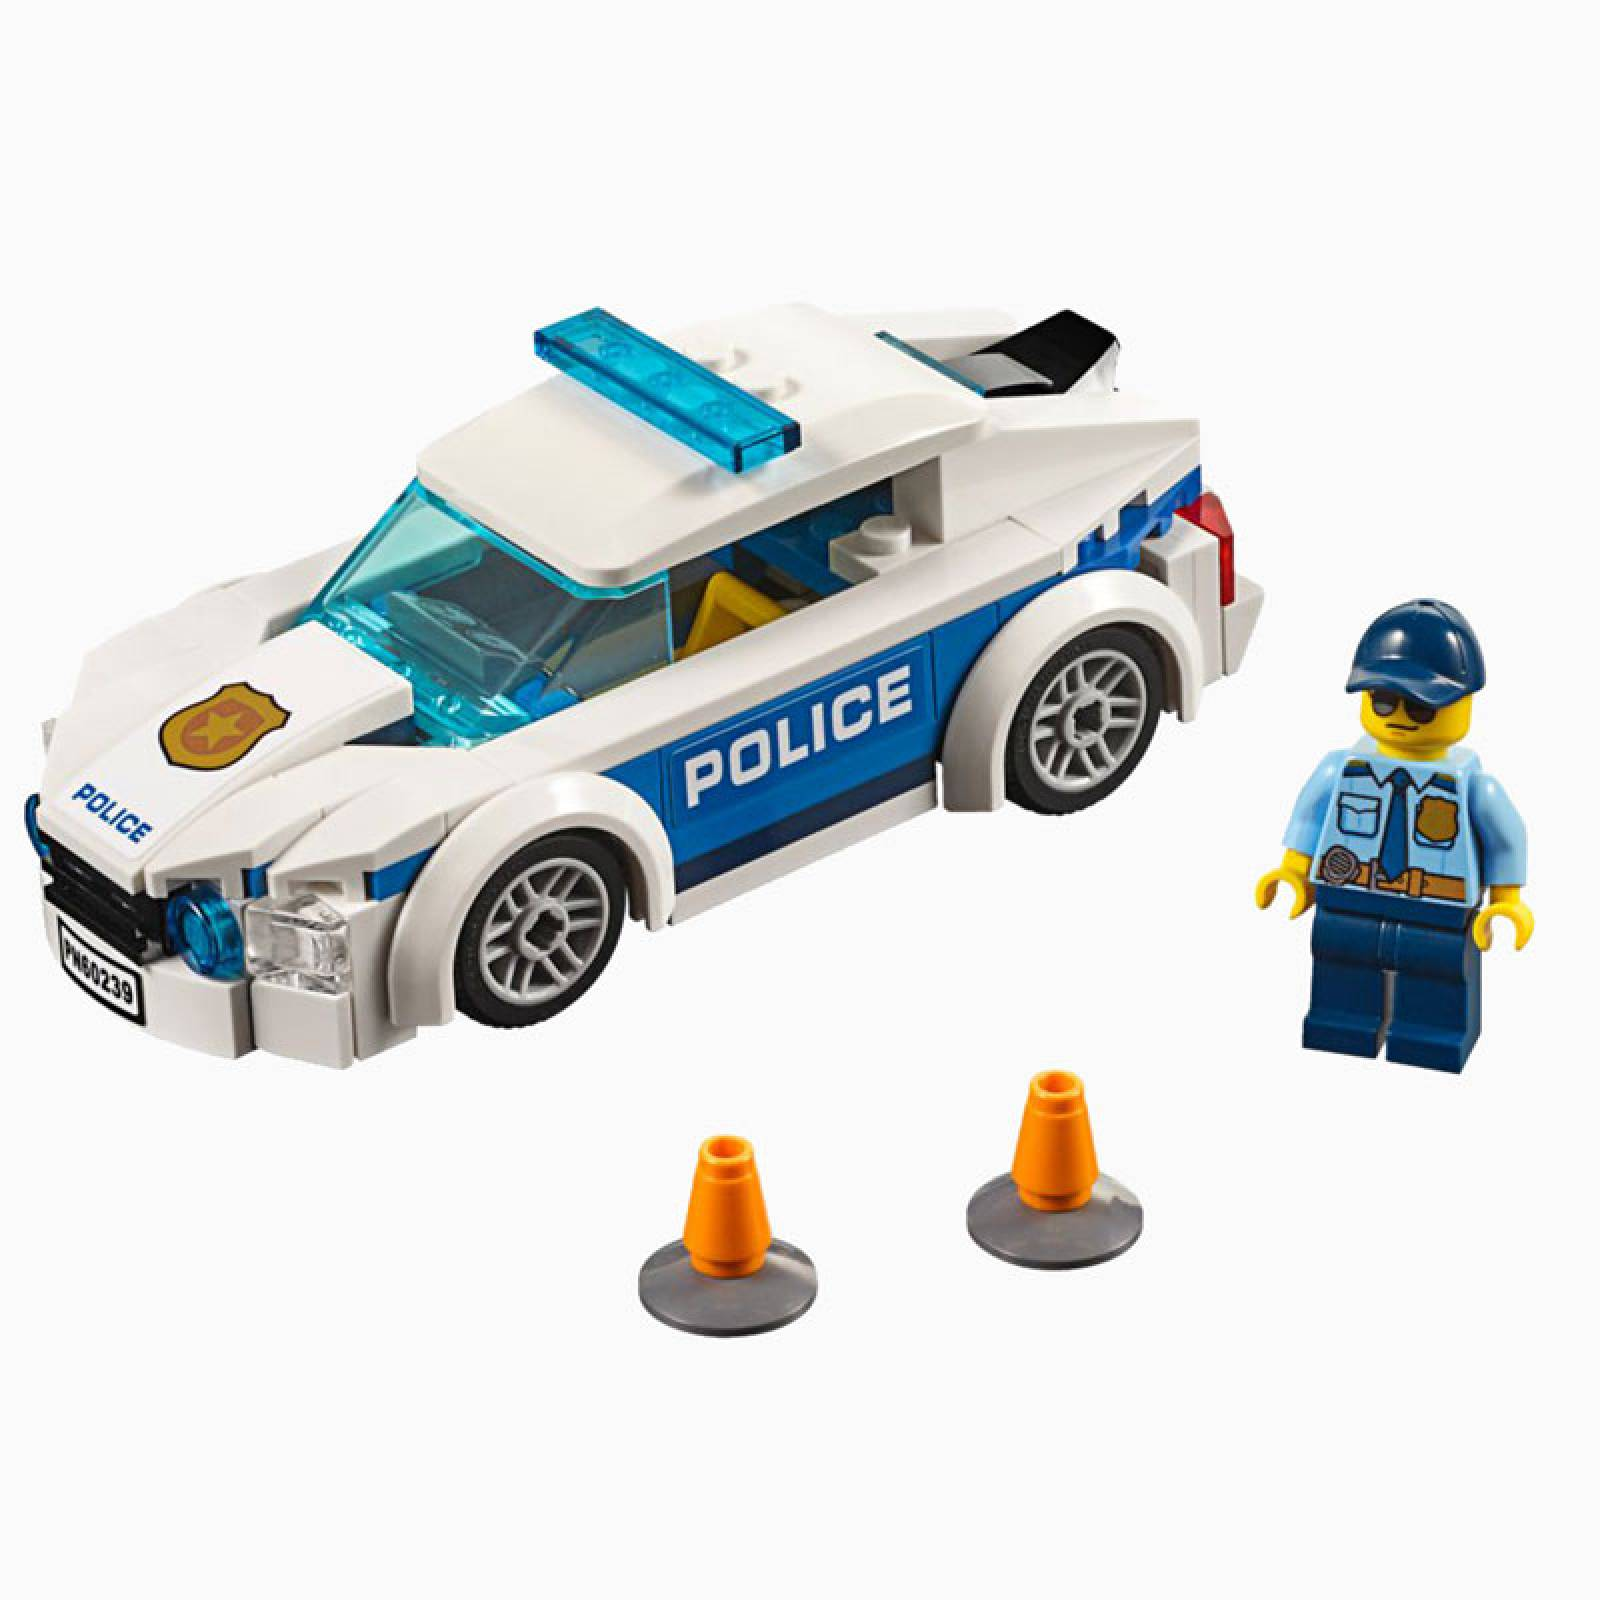 LEGO City Police Patrol Car 60239 thumbnails